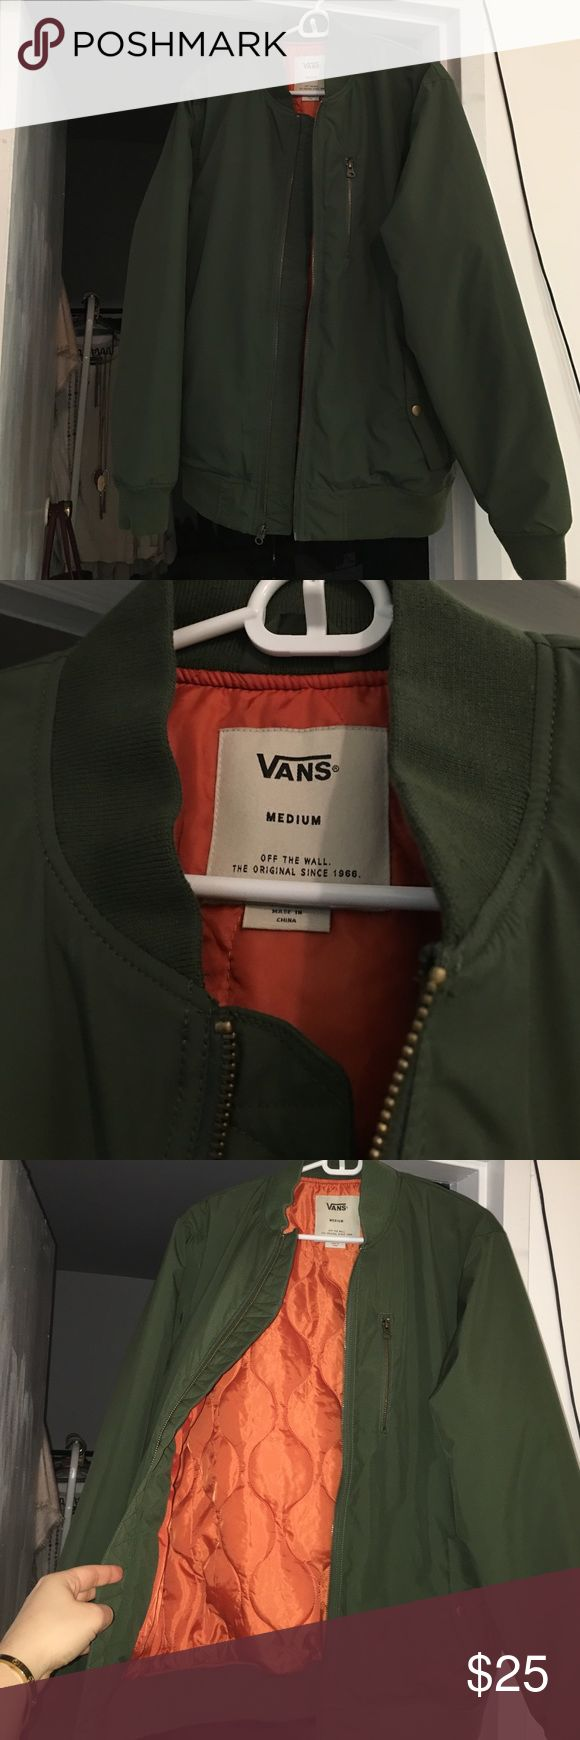 NWOT MEN's VANS olive green bomber jacket New without tags and never worn. Brand new from VANS. Olive green with orange interior. Vans Jackets & Coats Bomber & Varsity